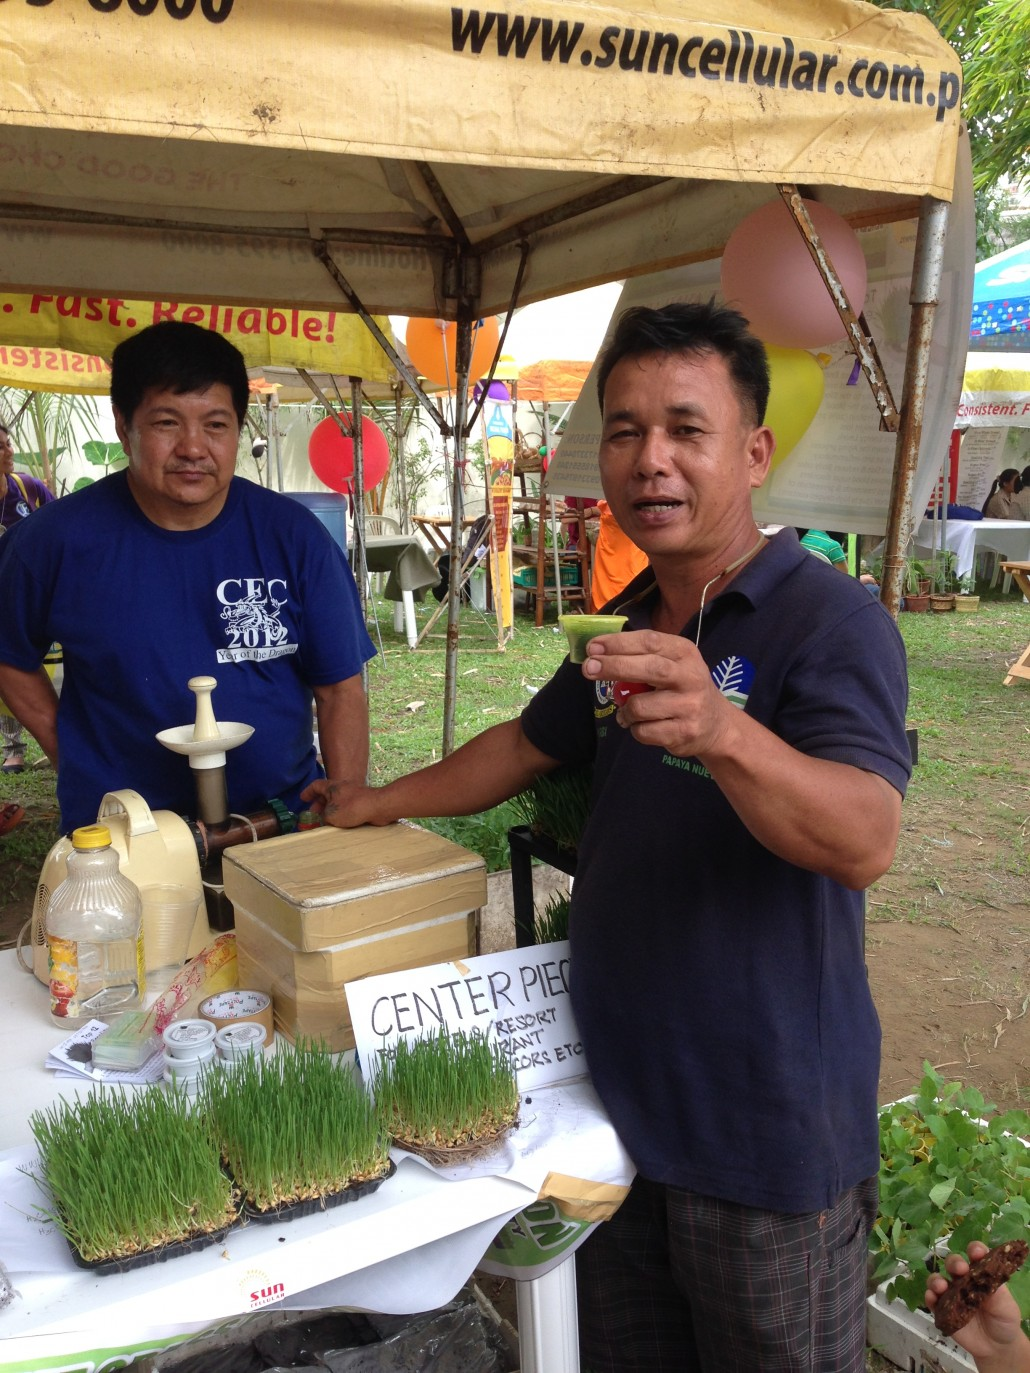 a booth displaying wheatgrass products and discussing its many benefits